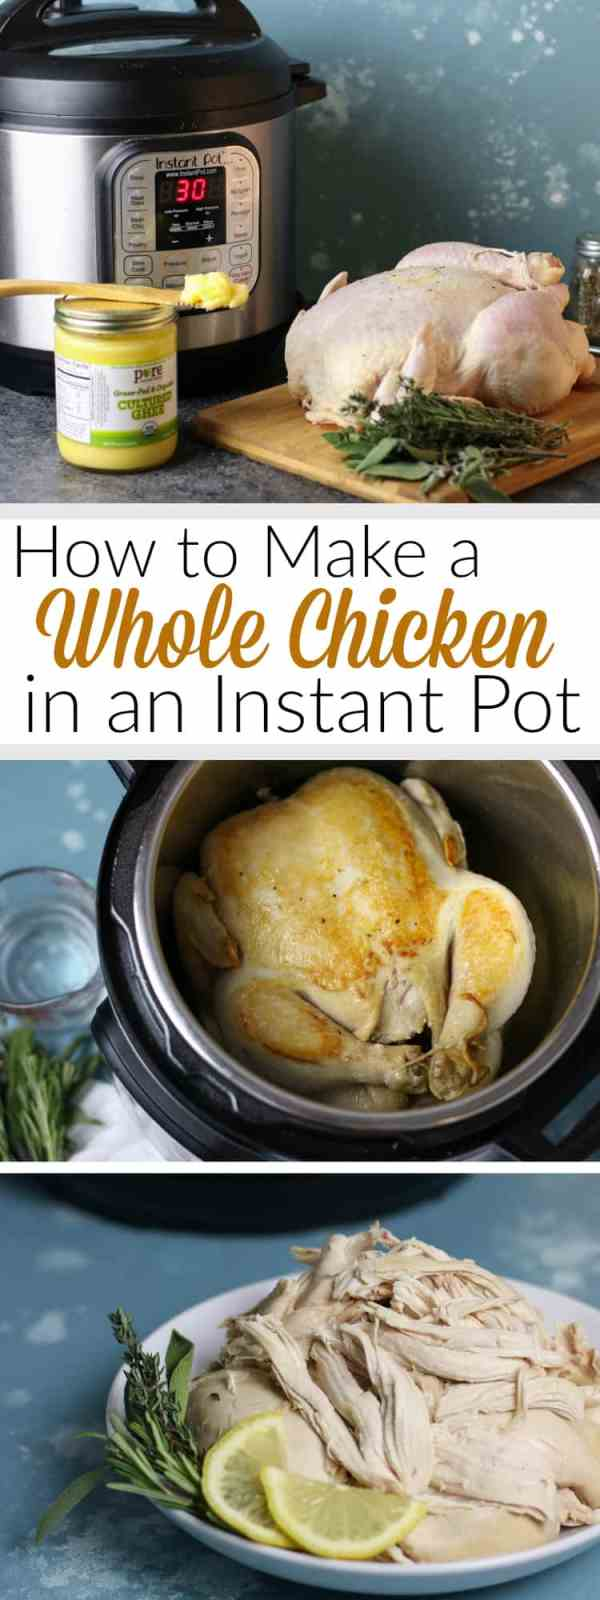 How to make a Whole Chicken in an Instant Pot | instant pot tips and tricks | cook a whole chicken | whole chicken recipes | easy whole chicken recipes | instant pot chicken recipes | kitchen tips and tricks || The Real Food Dietitians #wholechicken #instantpot #easyrecipes